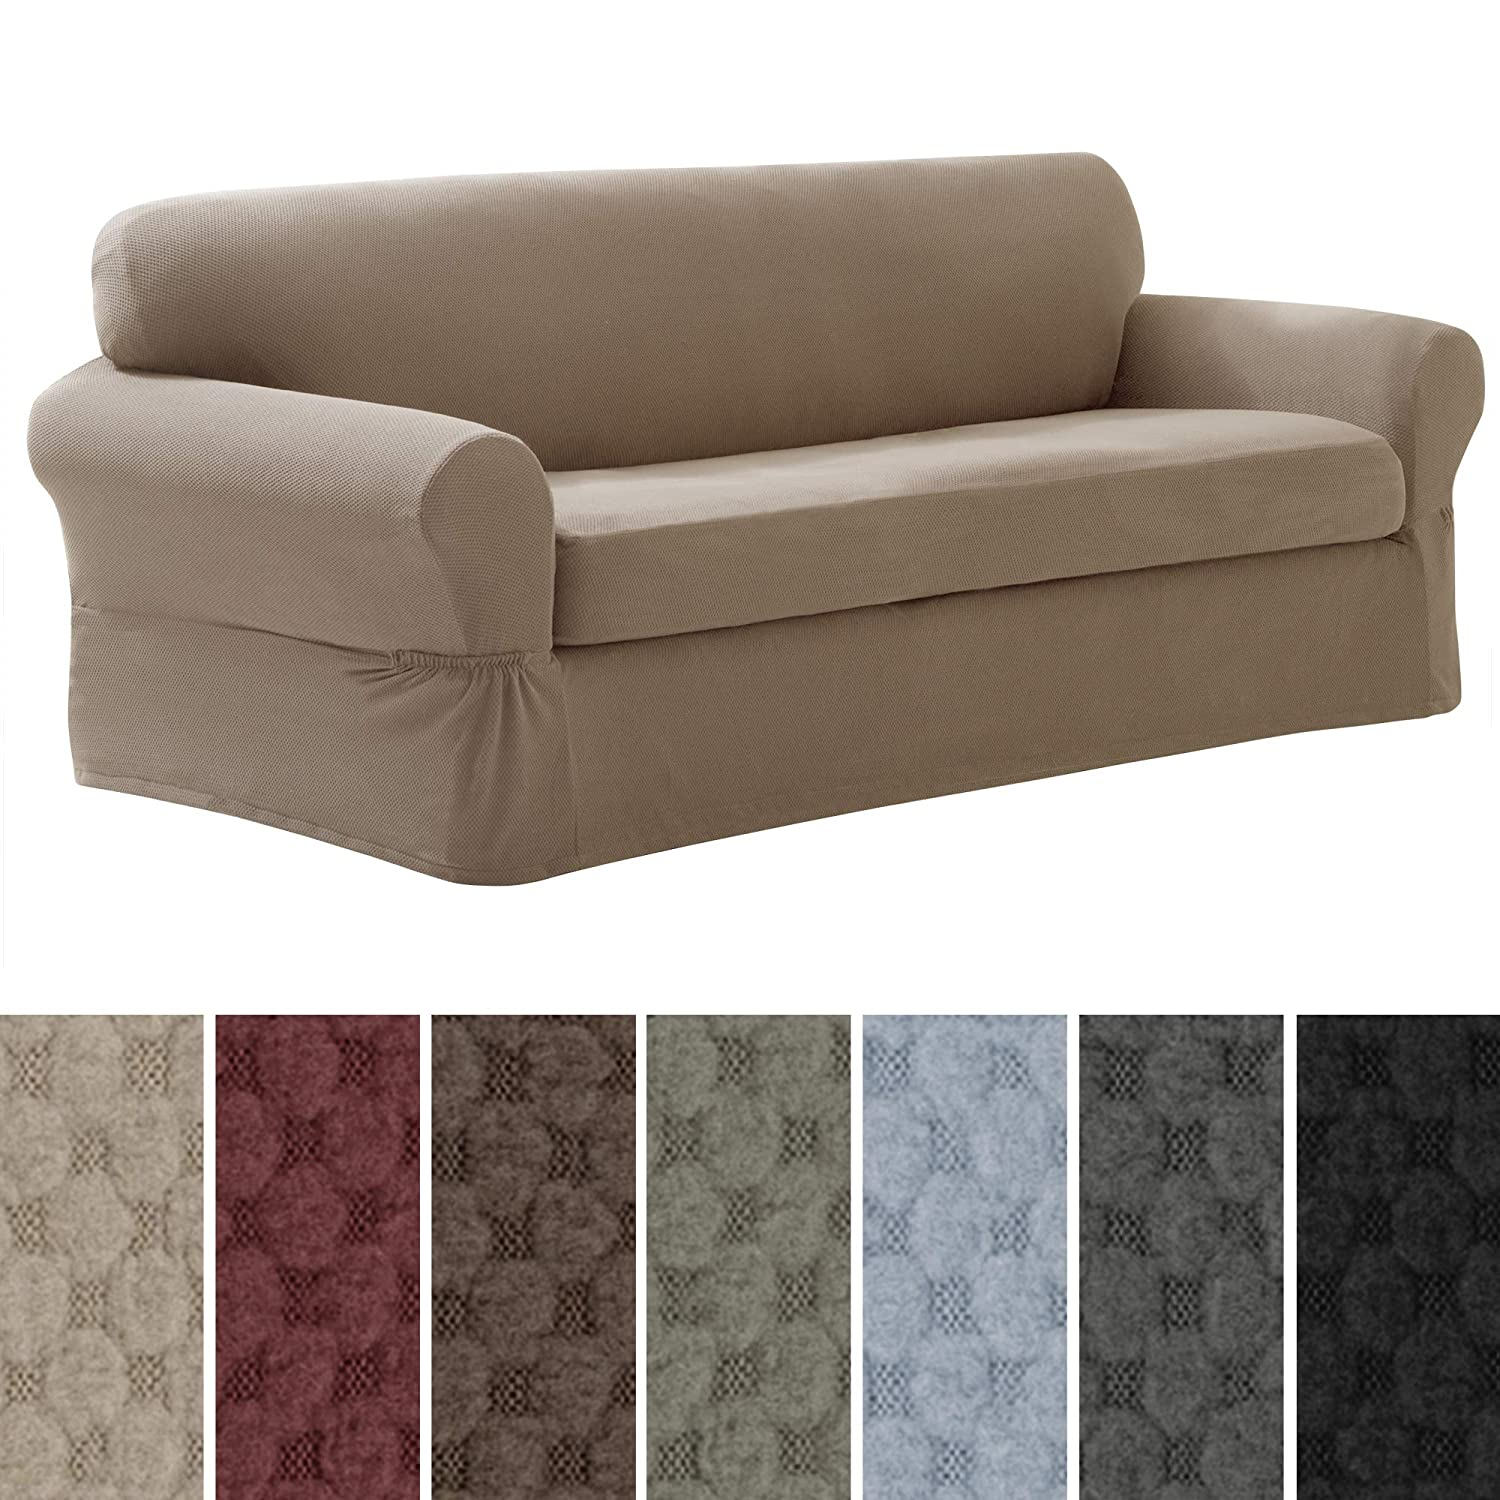 MAYTEX Mills Pixel Ultra Soft Stretch 2 Piece Furniture Cover, Sand Sofa Slipcover